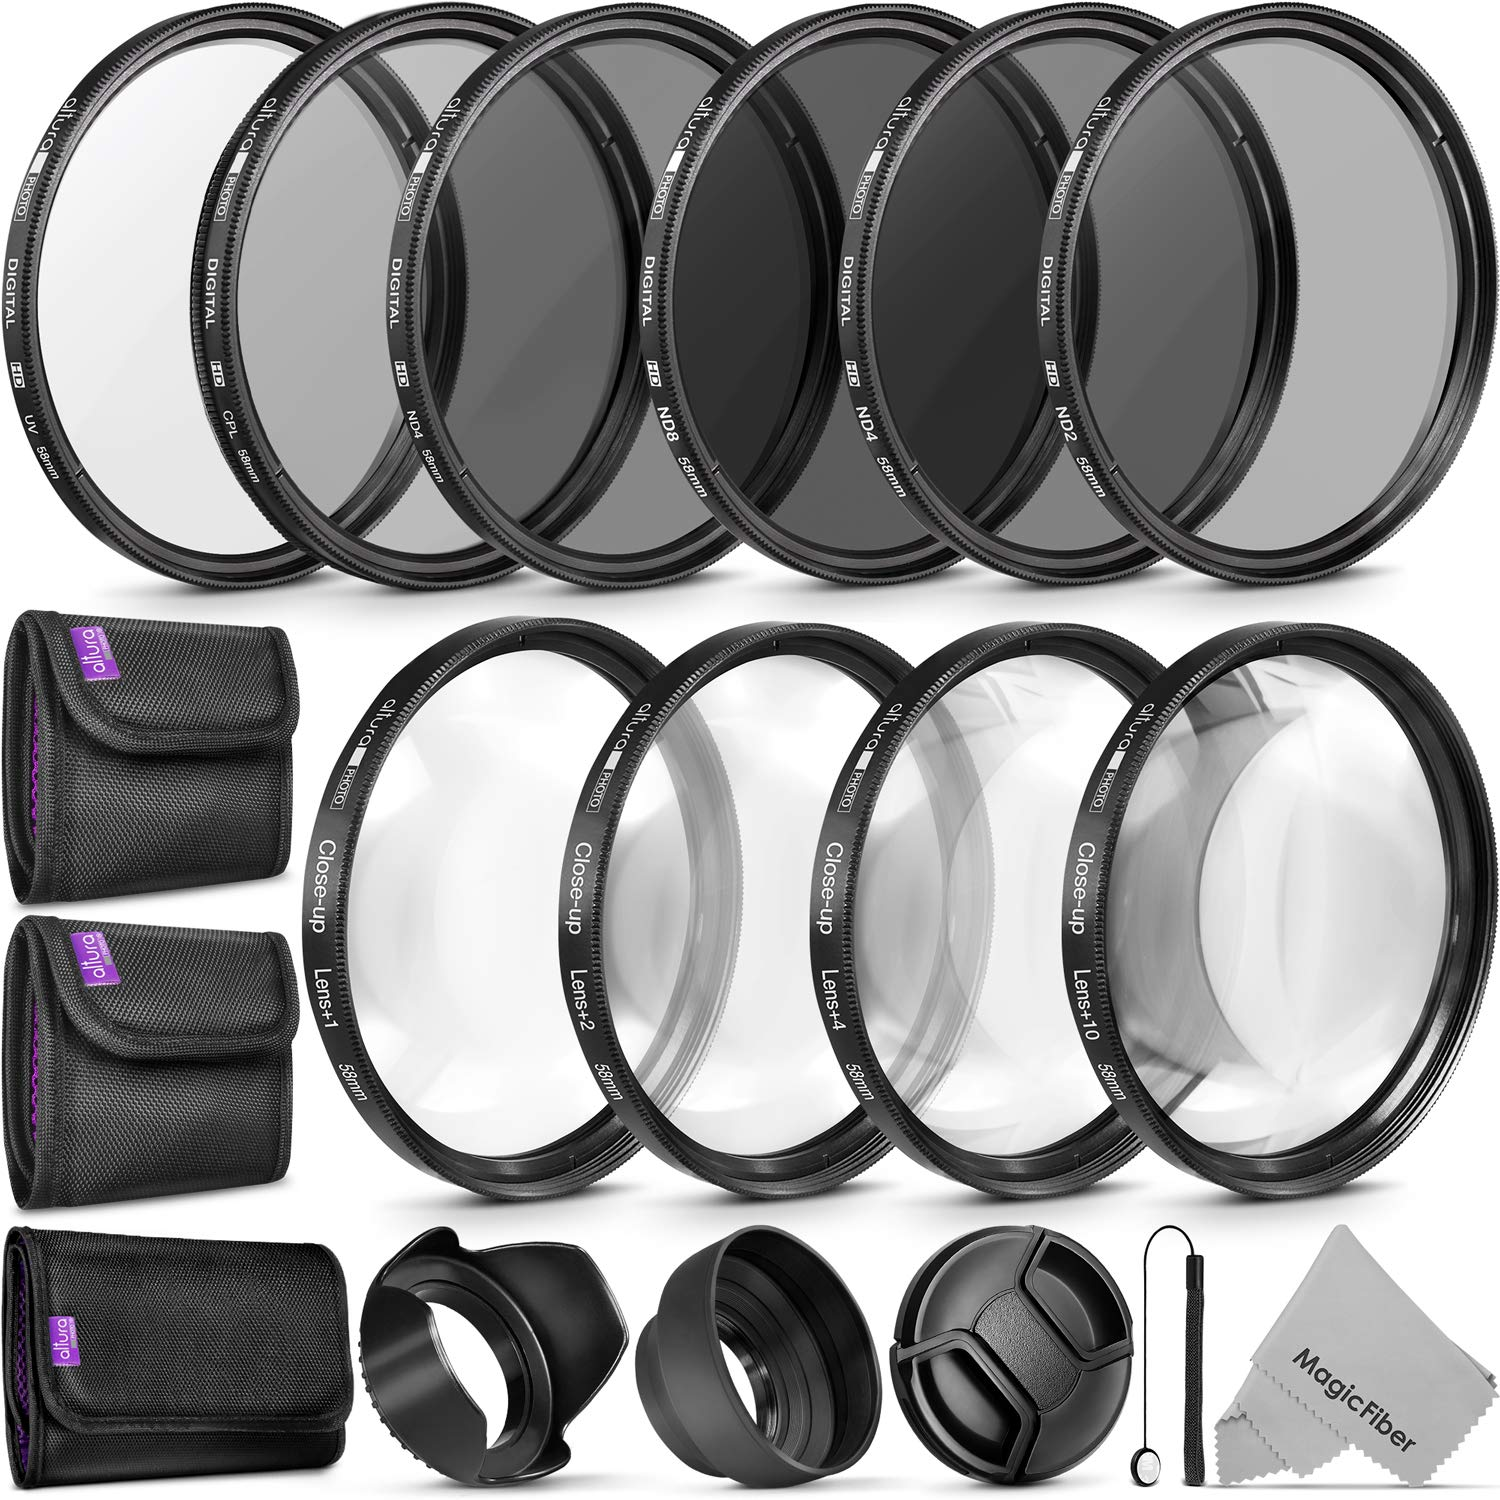 58MM Complete Lens Filter Accessory Kit (UV, CPL, ND4, ND2, ND4, ND8 and Macro Lens Set) for Canon EOS 70D 77D 80D Rebel T7 T7i T6i T6s T6 SL2 SL3 DSLR Cameras by Altura Photo